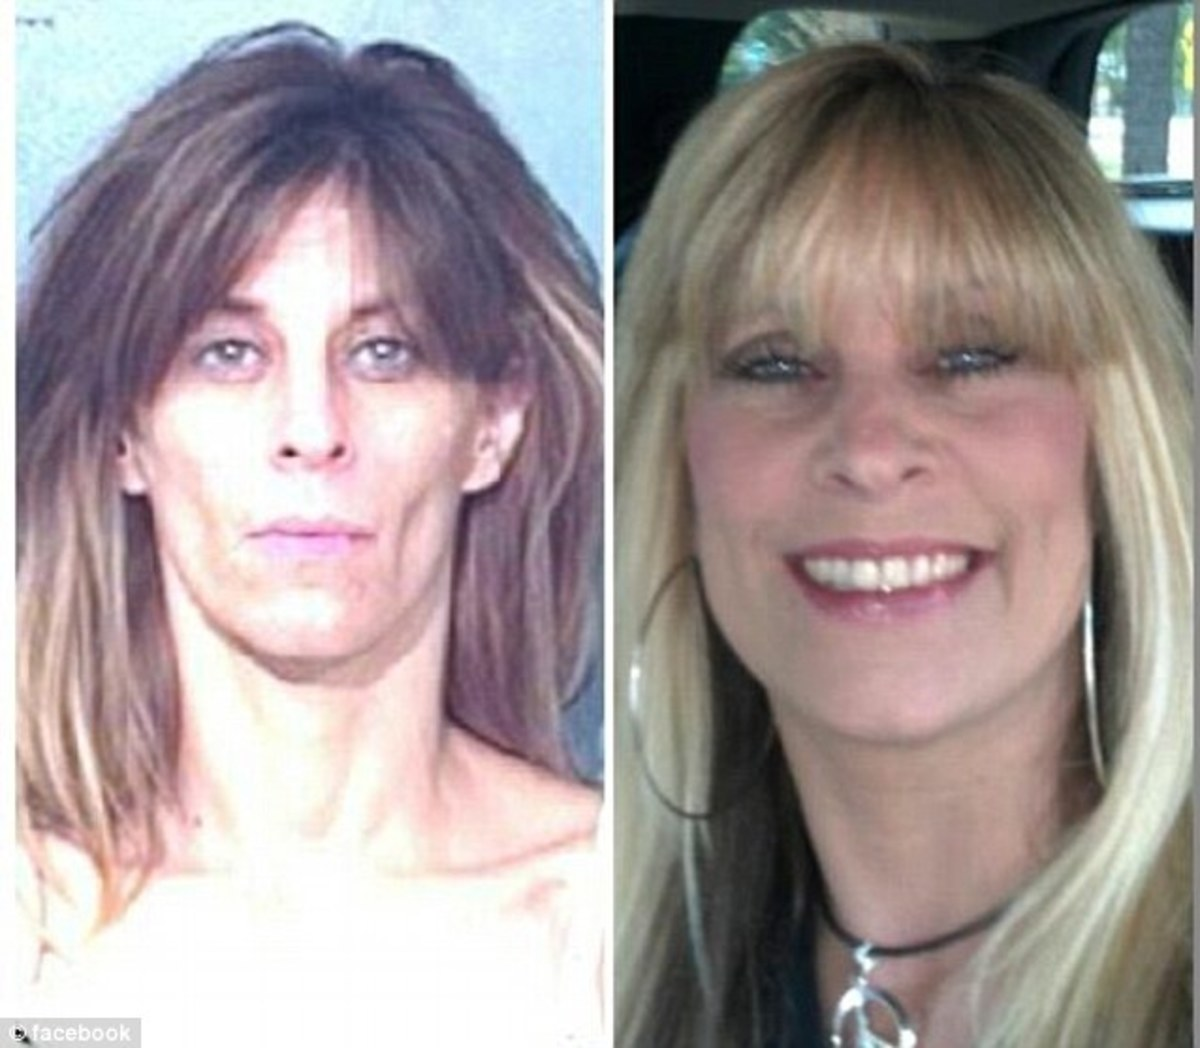 Amazing recovery of a former meth user. Sobriety and health is possible.